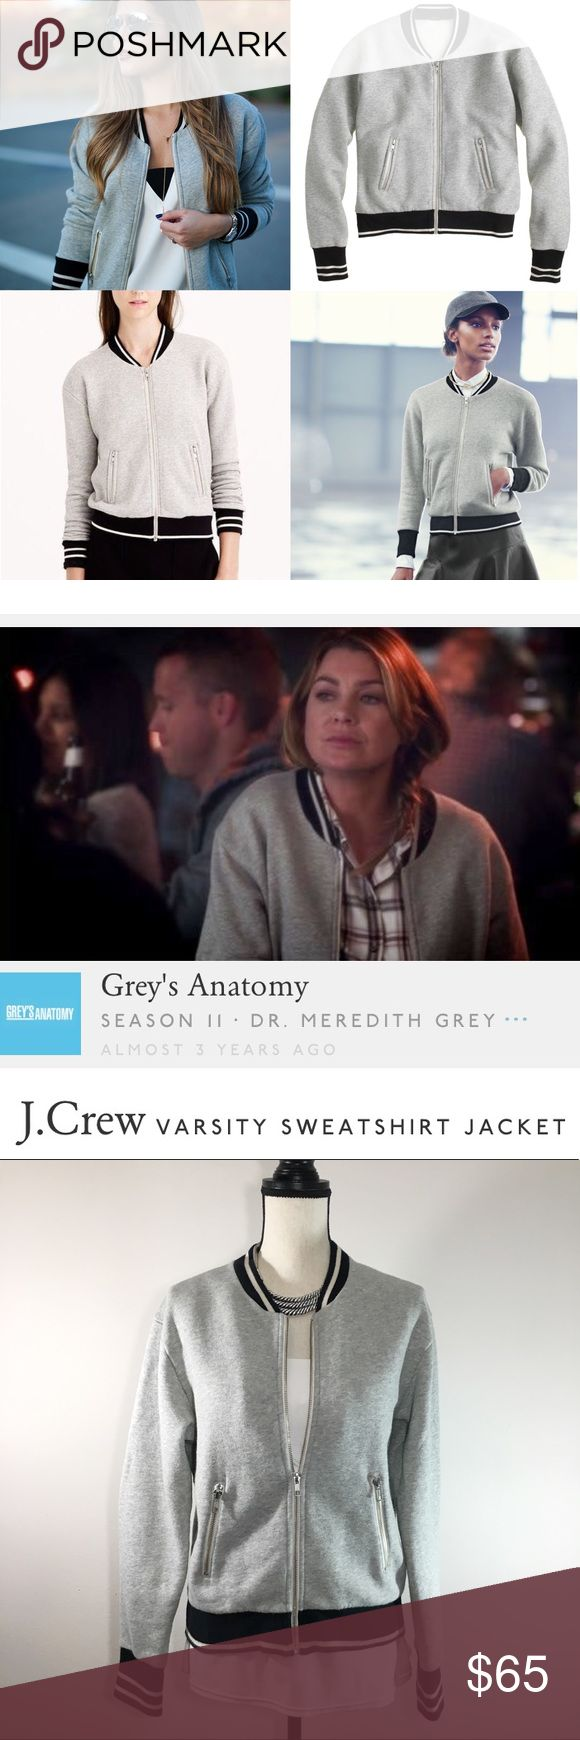 """🔲J. Crew Varsity Gray Black Zip Sweatshirt Jacket J. Crew Varsity Sweatshirt Jacket - Sold Out Online & In-Store  Color: Heather gray with black & white striped trim  Part cozy sweatshirt, part varsity jacket, it's the perfect layer for those weird in-between weather days. Slightly loose fit. Body length: 24"""", Bust: 40"""". Cotton/poly/tencel lyocell. Split kangaroo pockets. Machine wash.   As seen on TV, worn by Dr. Meredith Grey on Grey's Anatomy.  *Nice used condition, minimal wear, slight…"""